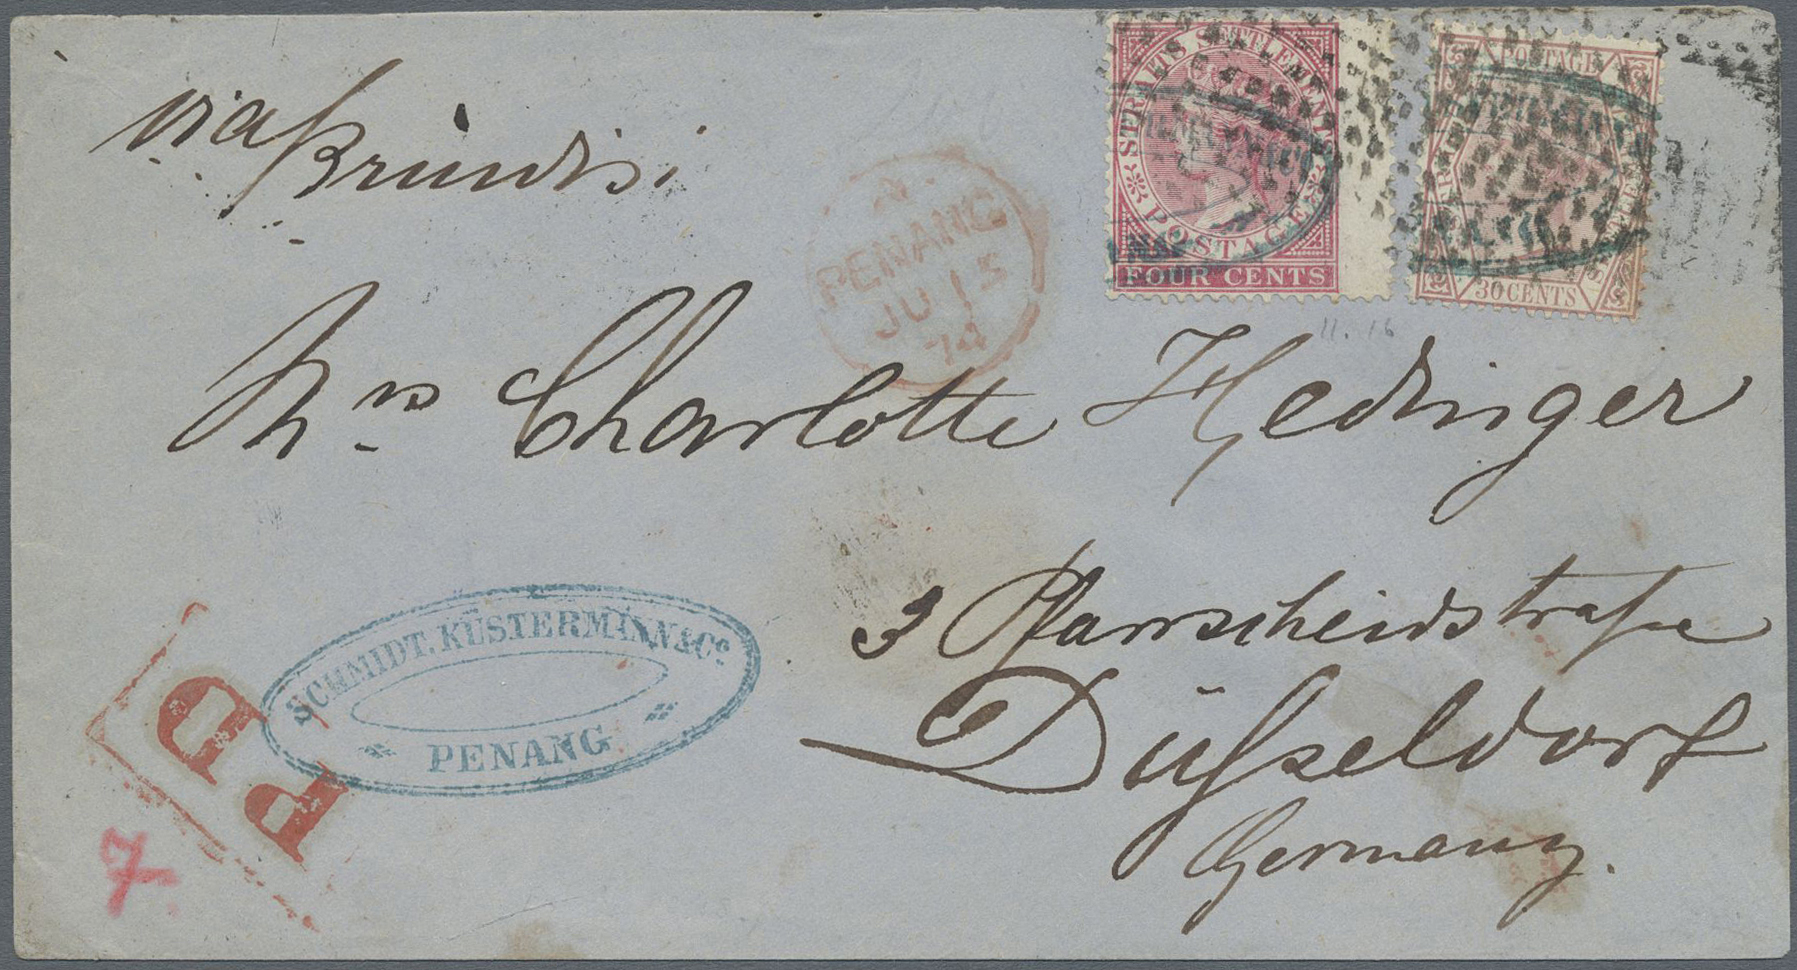 Lot 9485 - Malaiische Staaten - Penang  -  Auktionshaus Christoph Gärtner GmbH & Co. KG Philately: ASIA single lots including Special Catalog Malaya Auction #39 Day 3